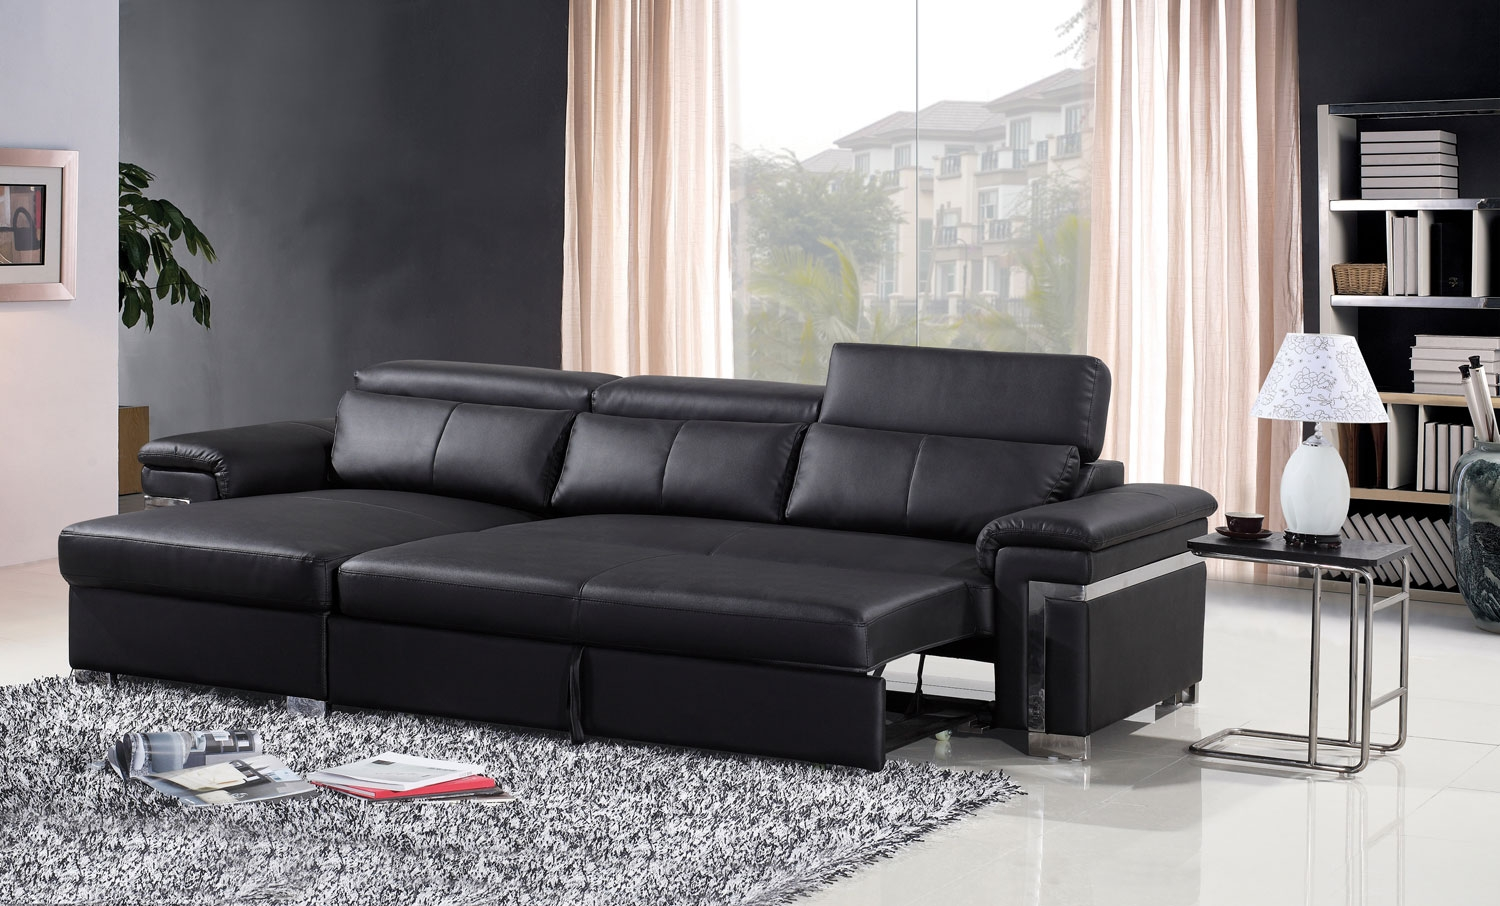 The Best Picks Of Colored Leather Sofa Beds In 2017 Leather Sofa Bed Leather Sofas